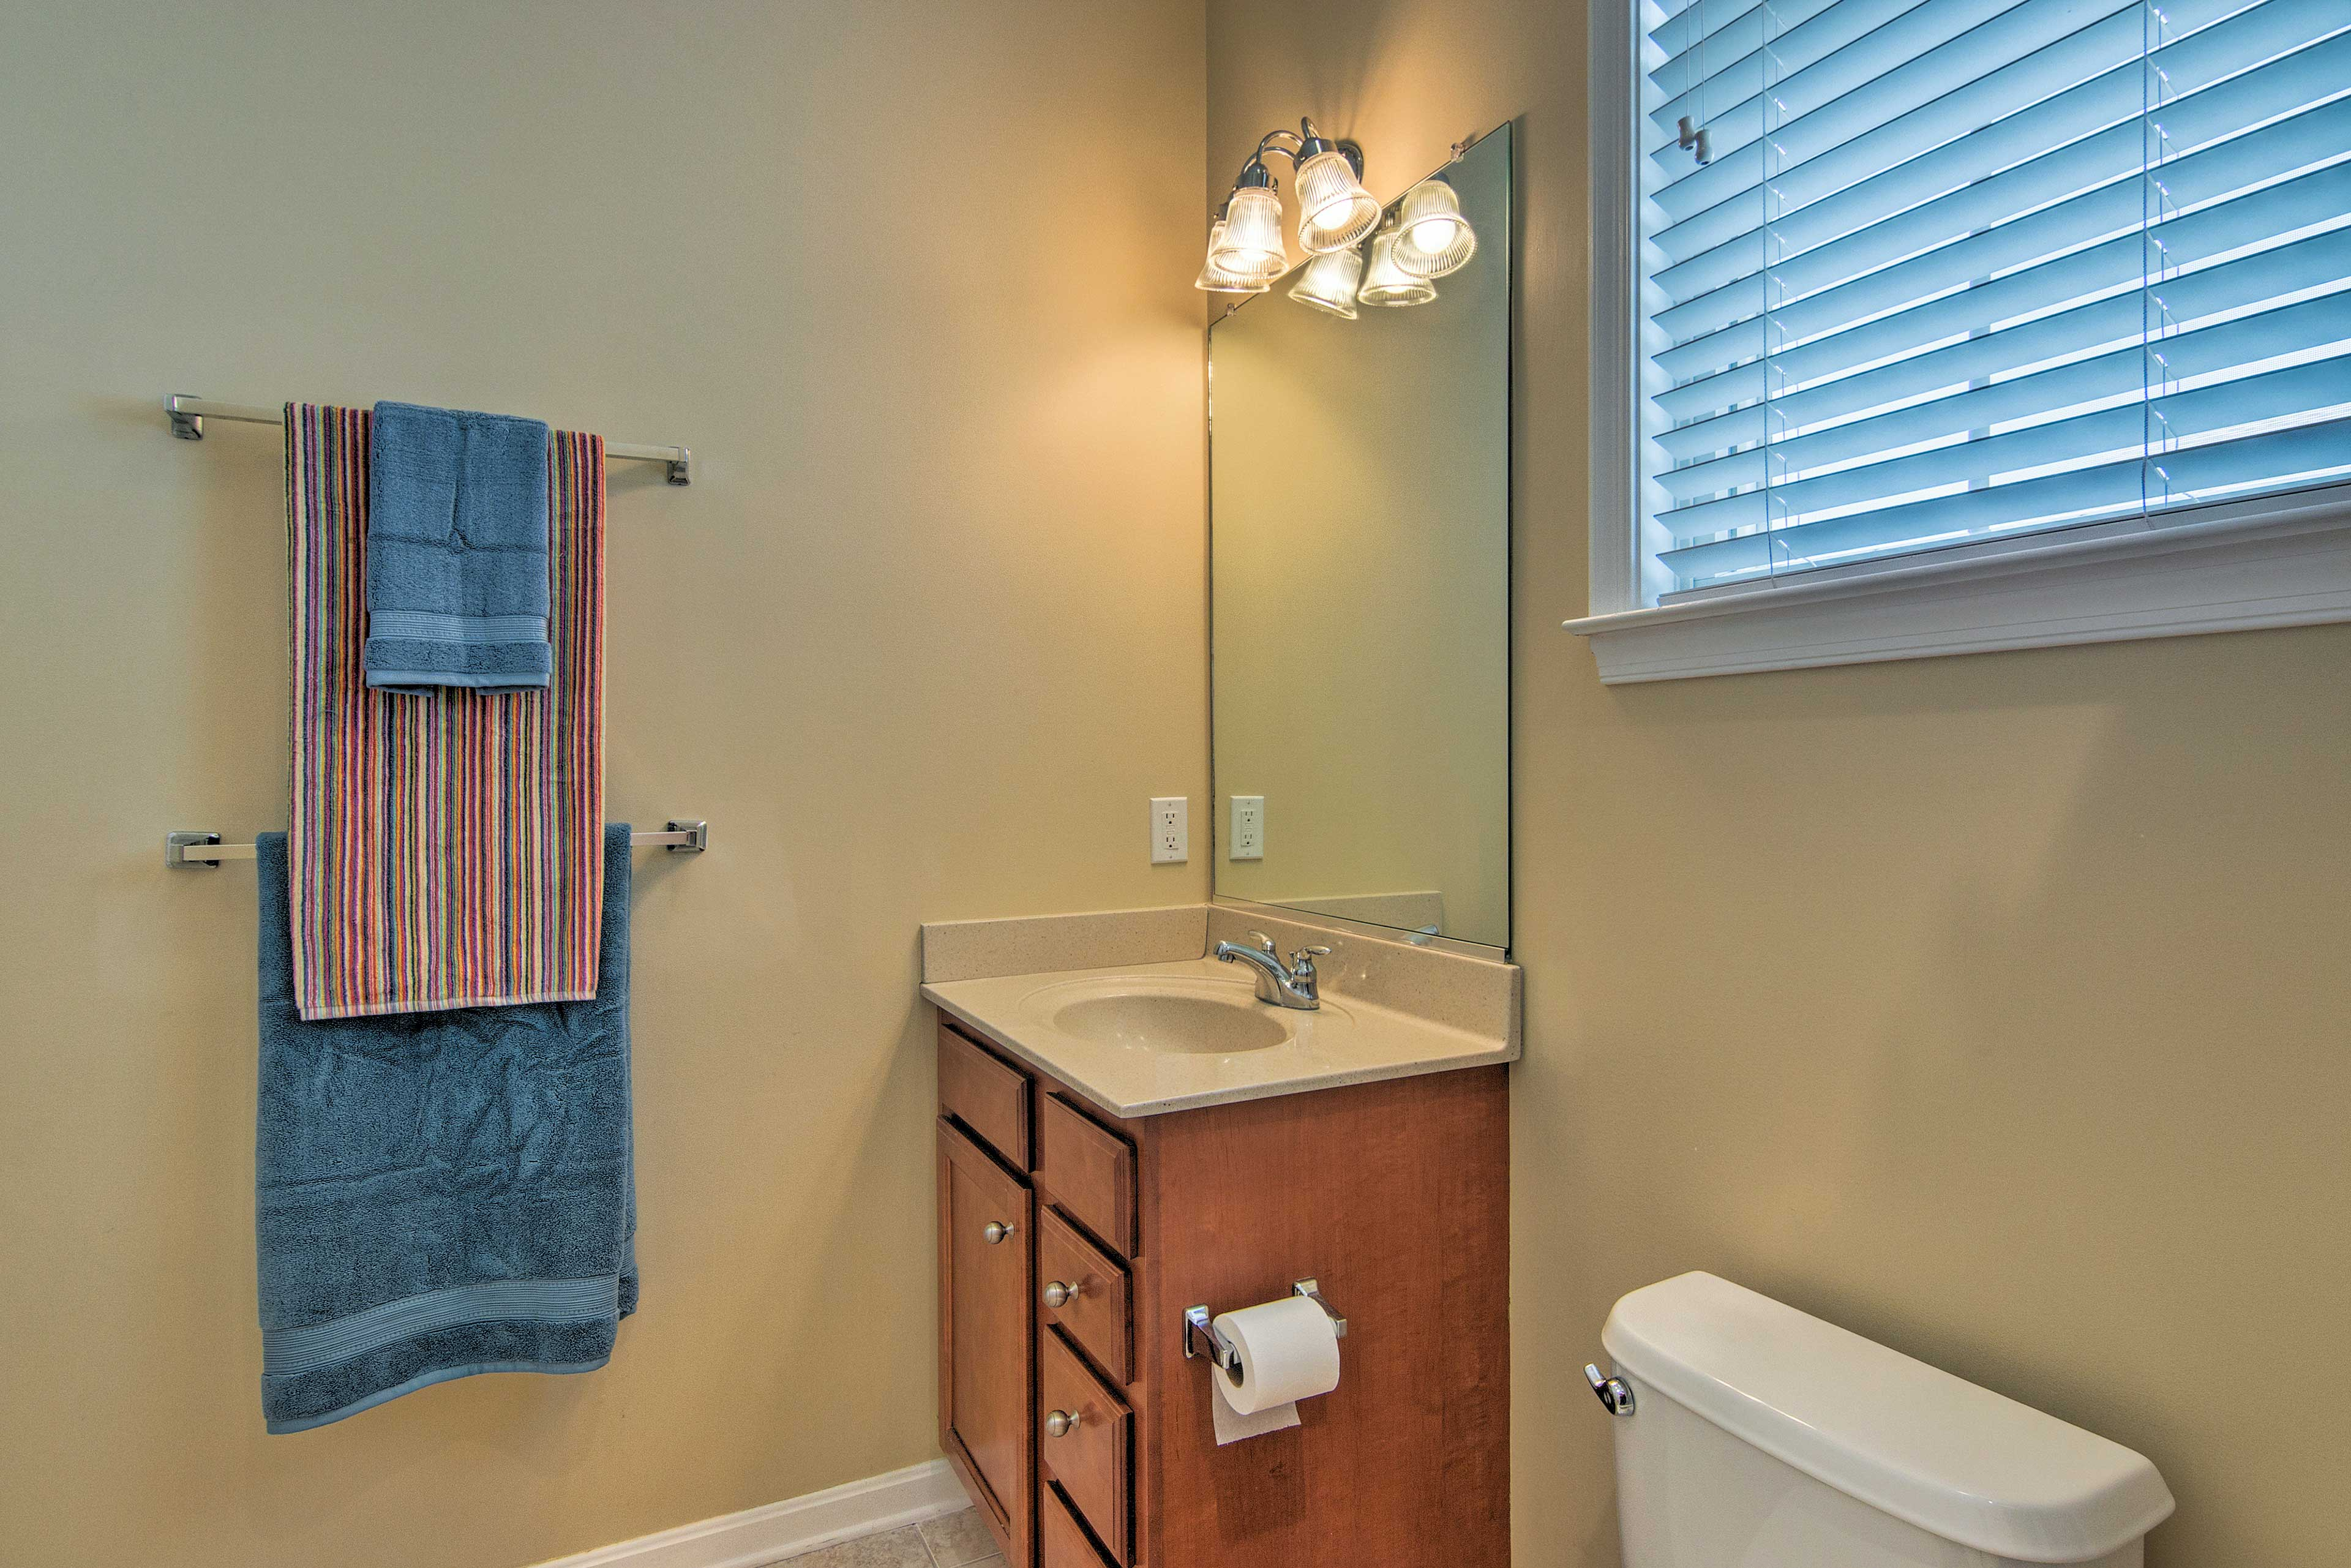 A full bathroom with colorful details is located upstairs.